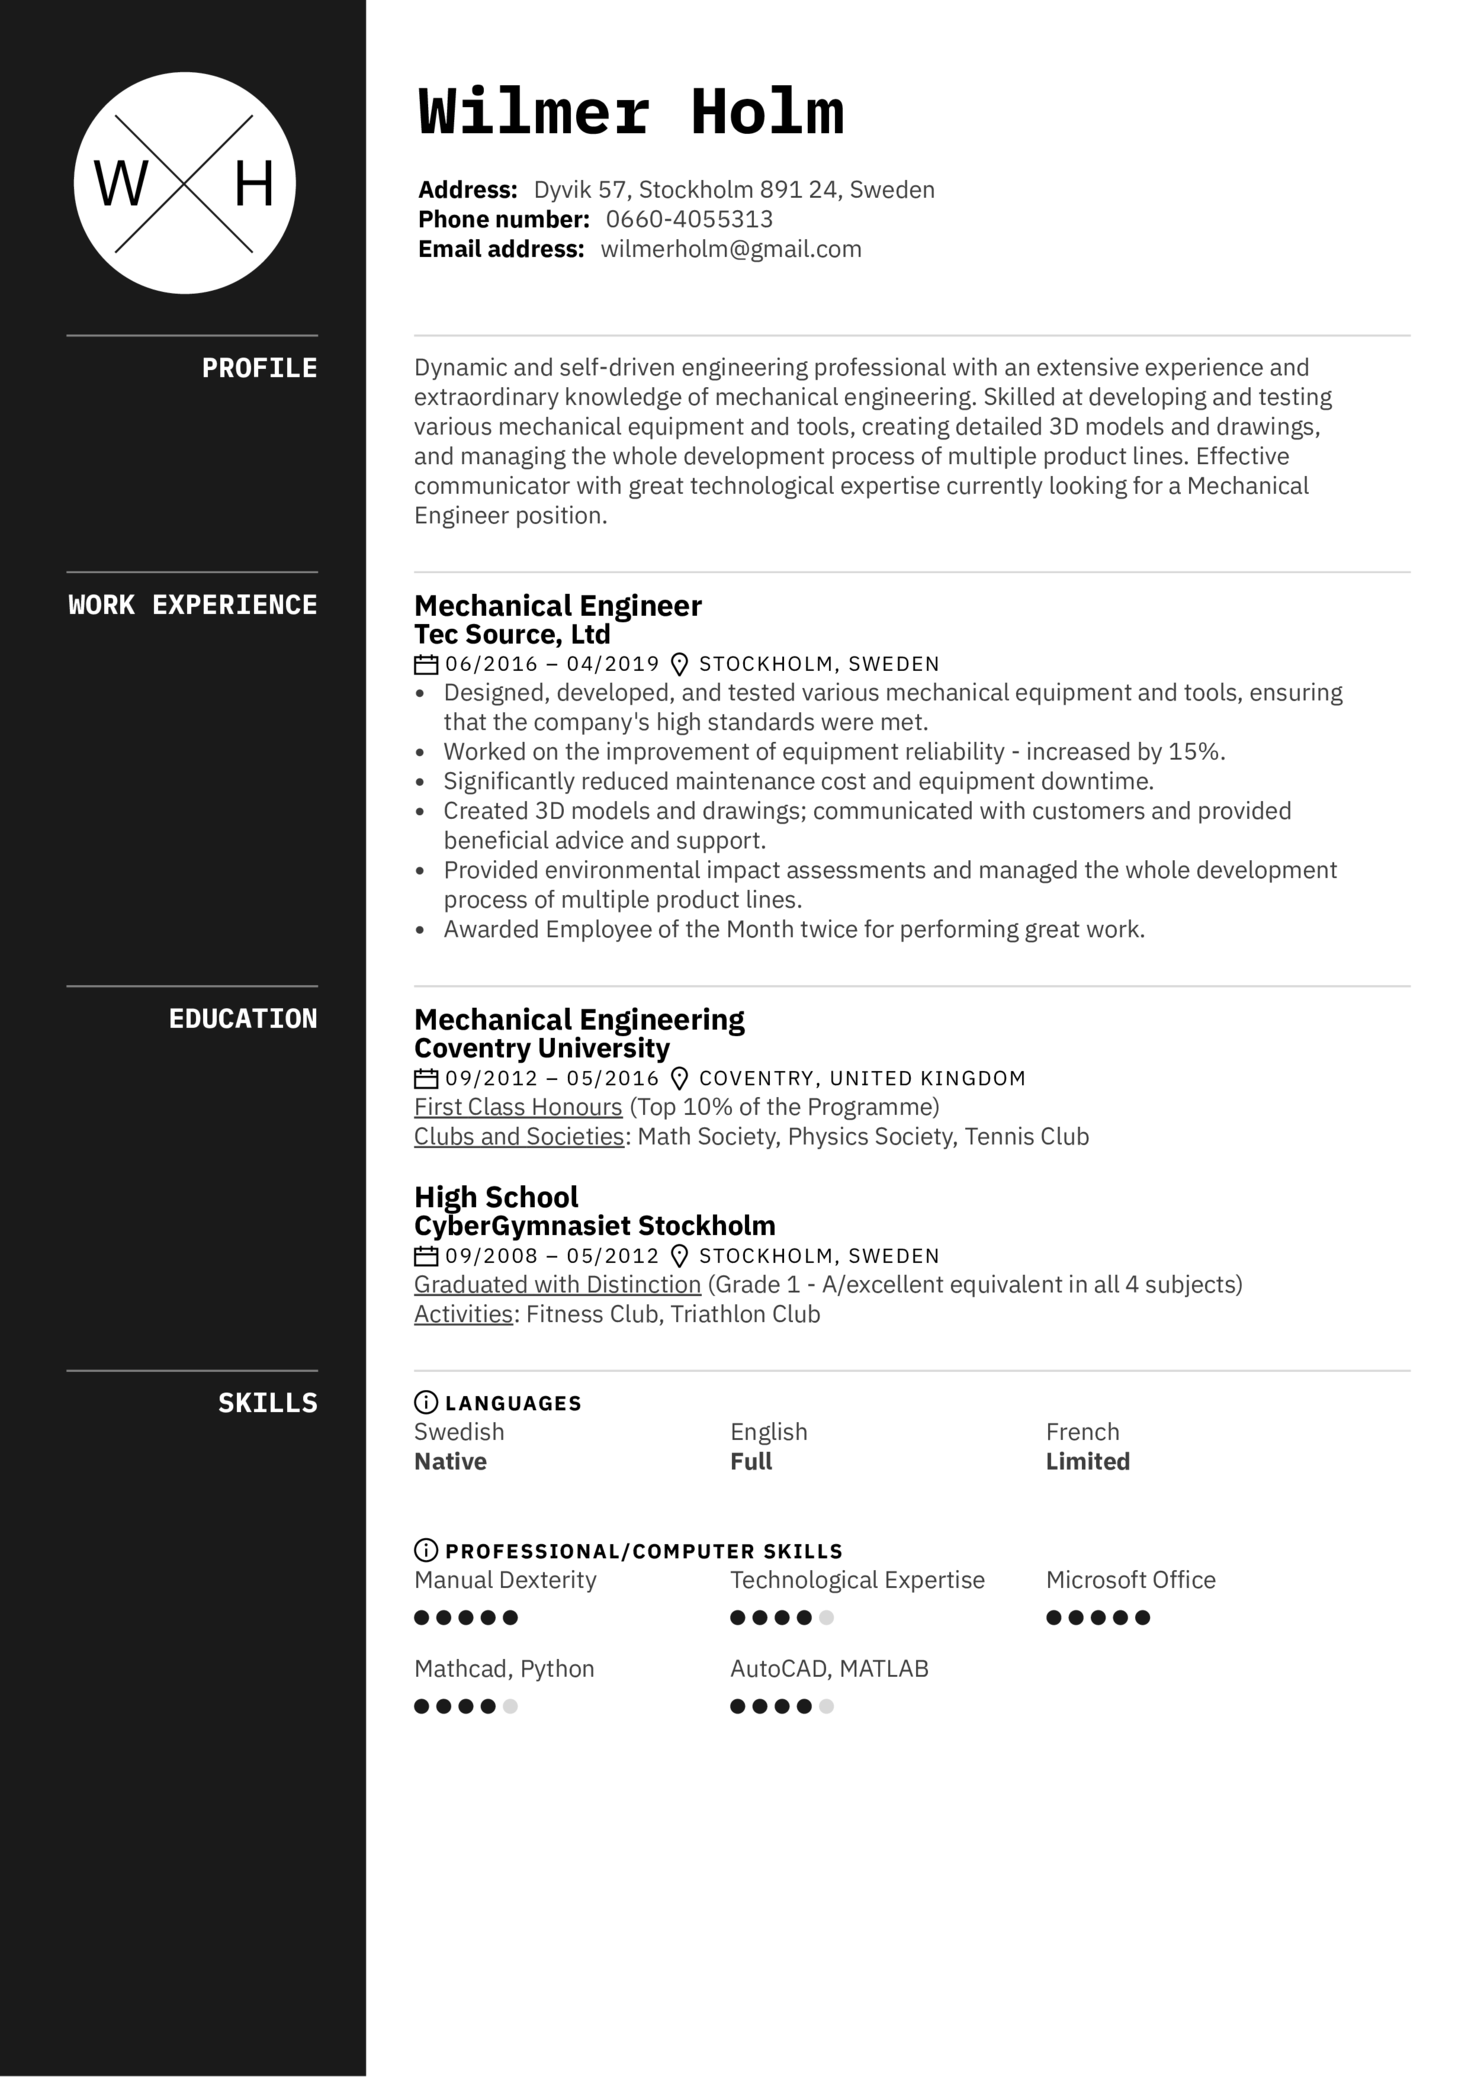 Mechanical Engineer Resume Sample (parte 1)